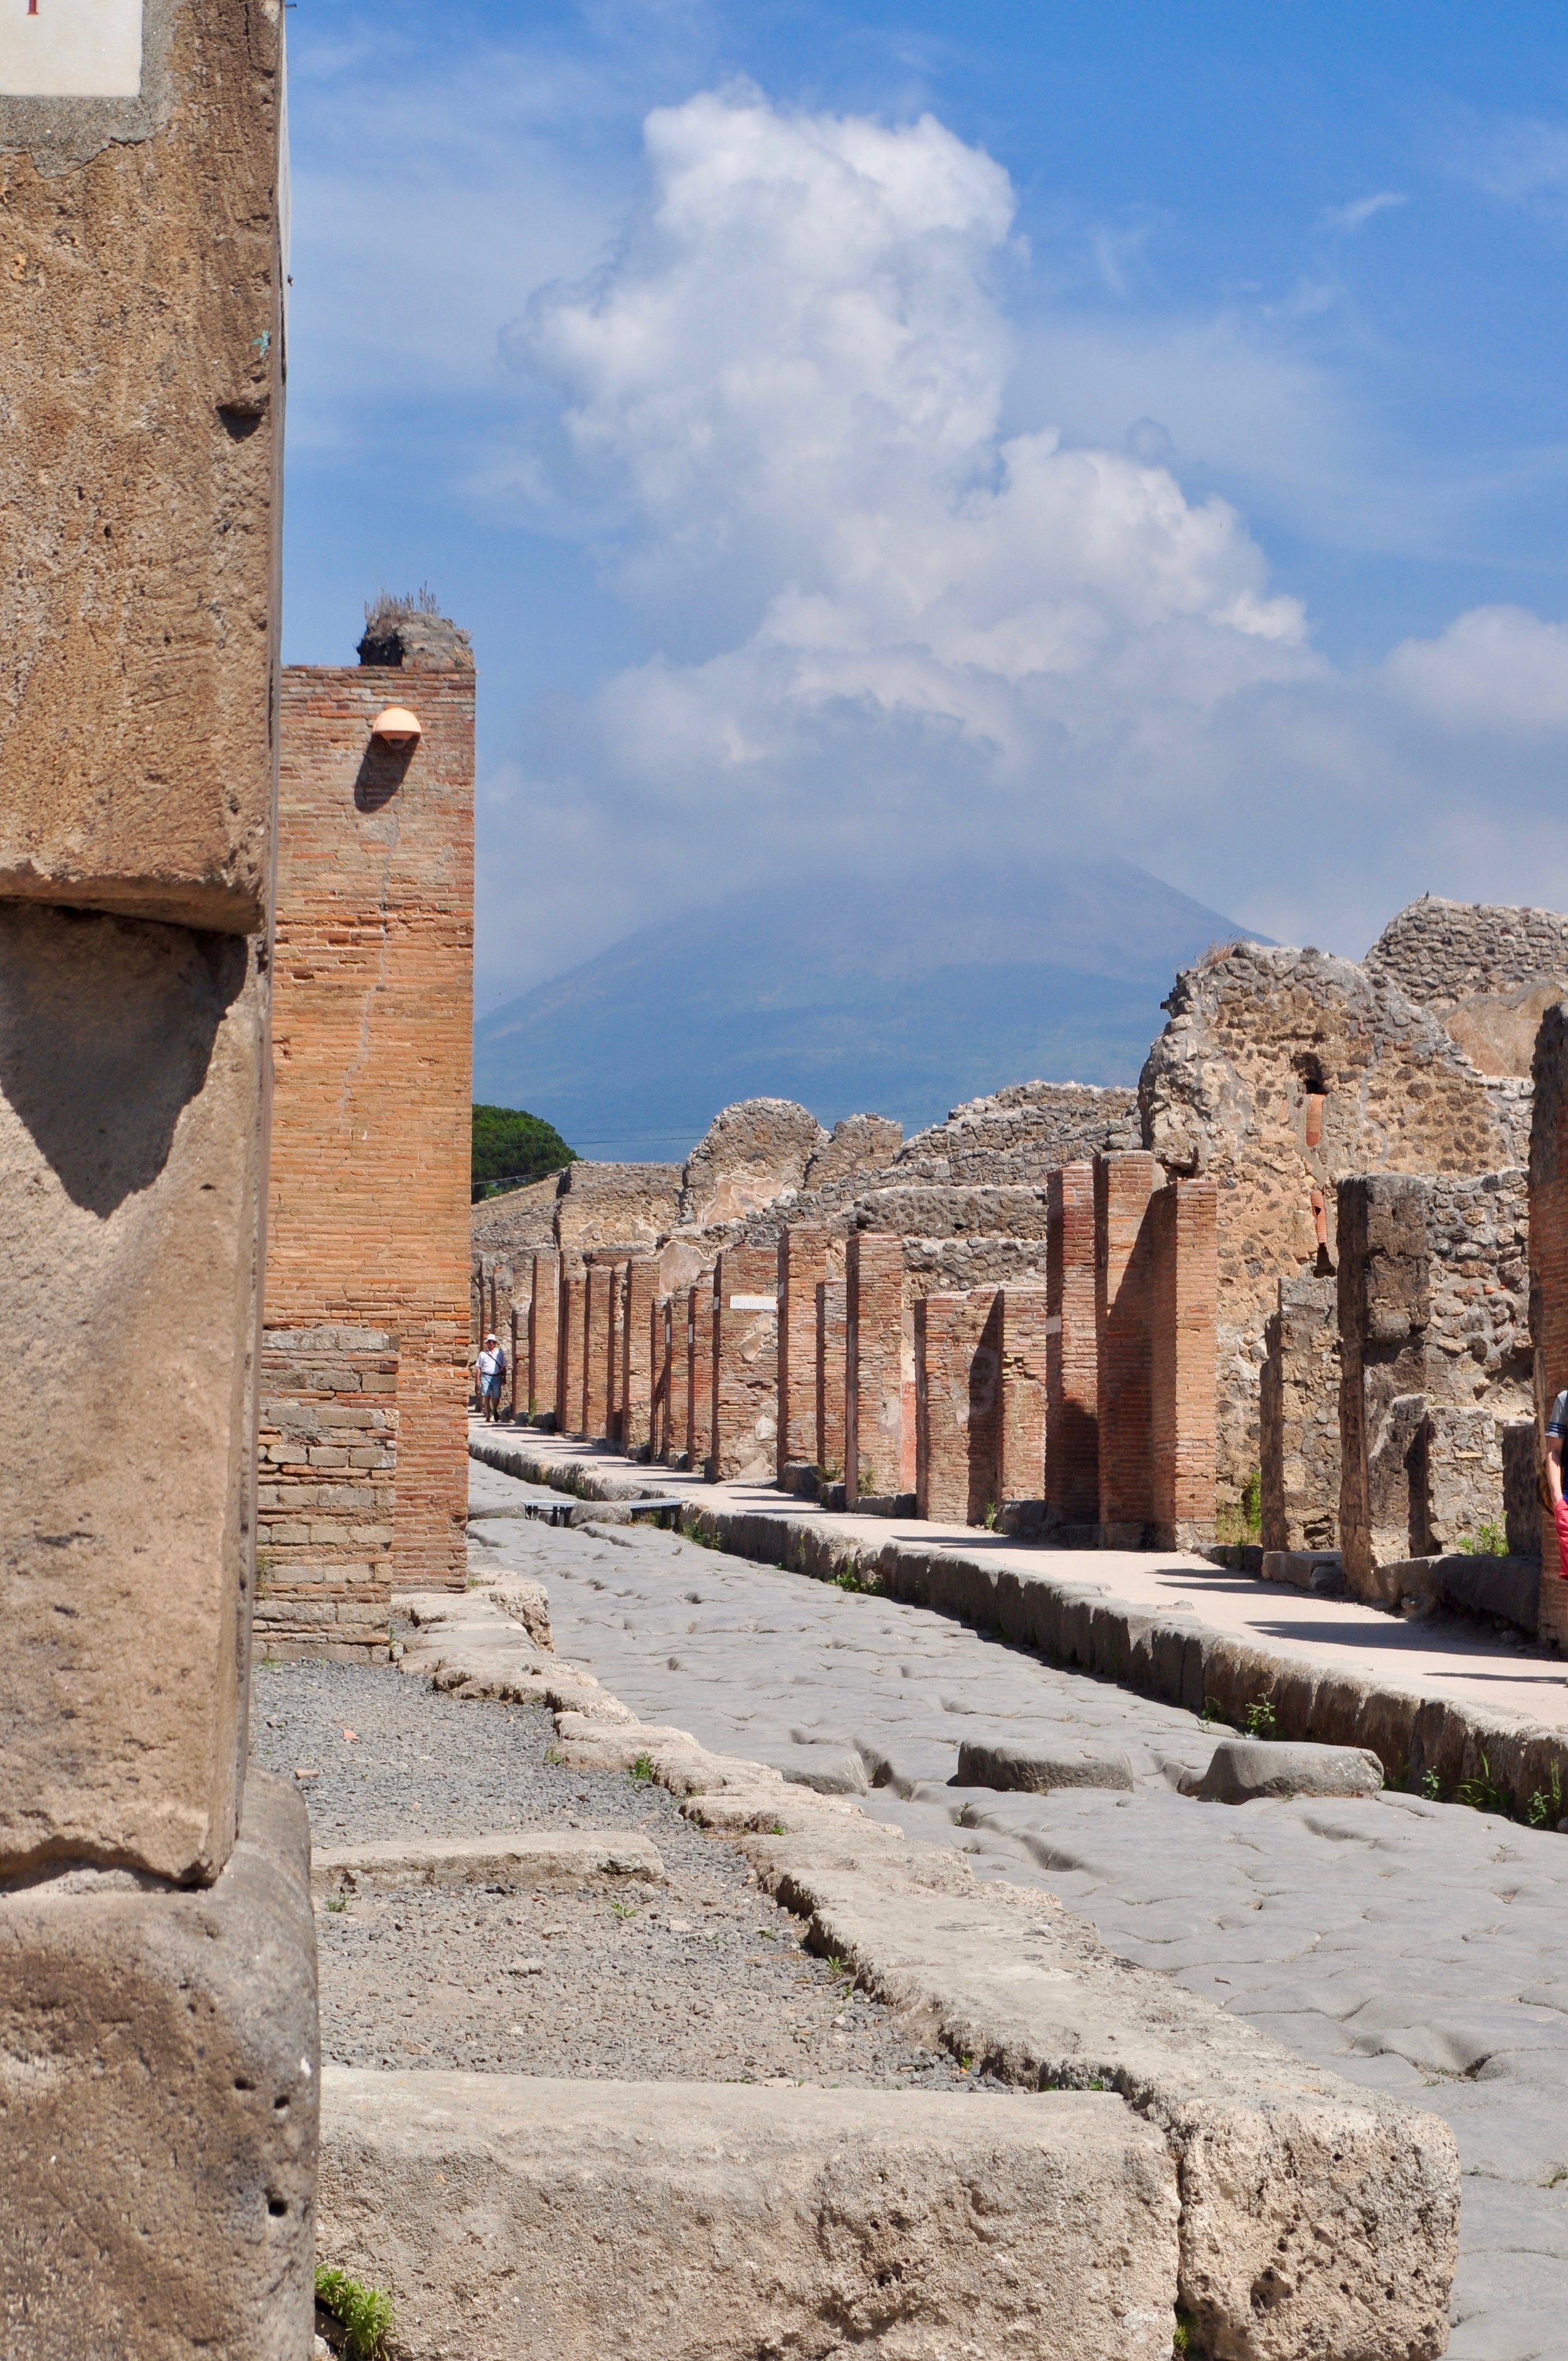 Streets of Pompeii with the deadly Mount Vesuvius in the background